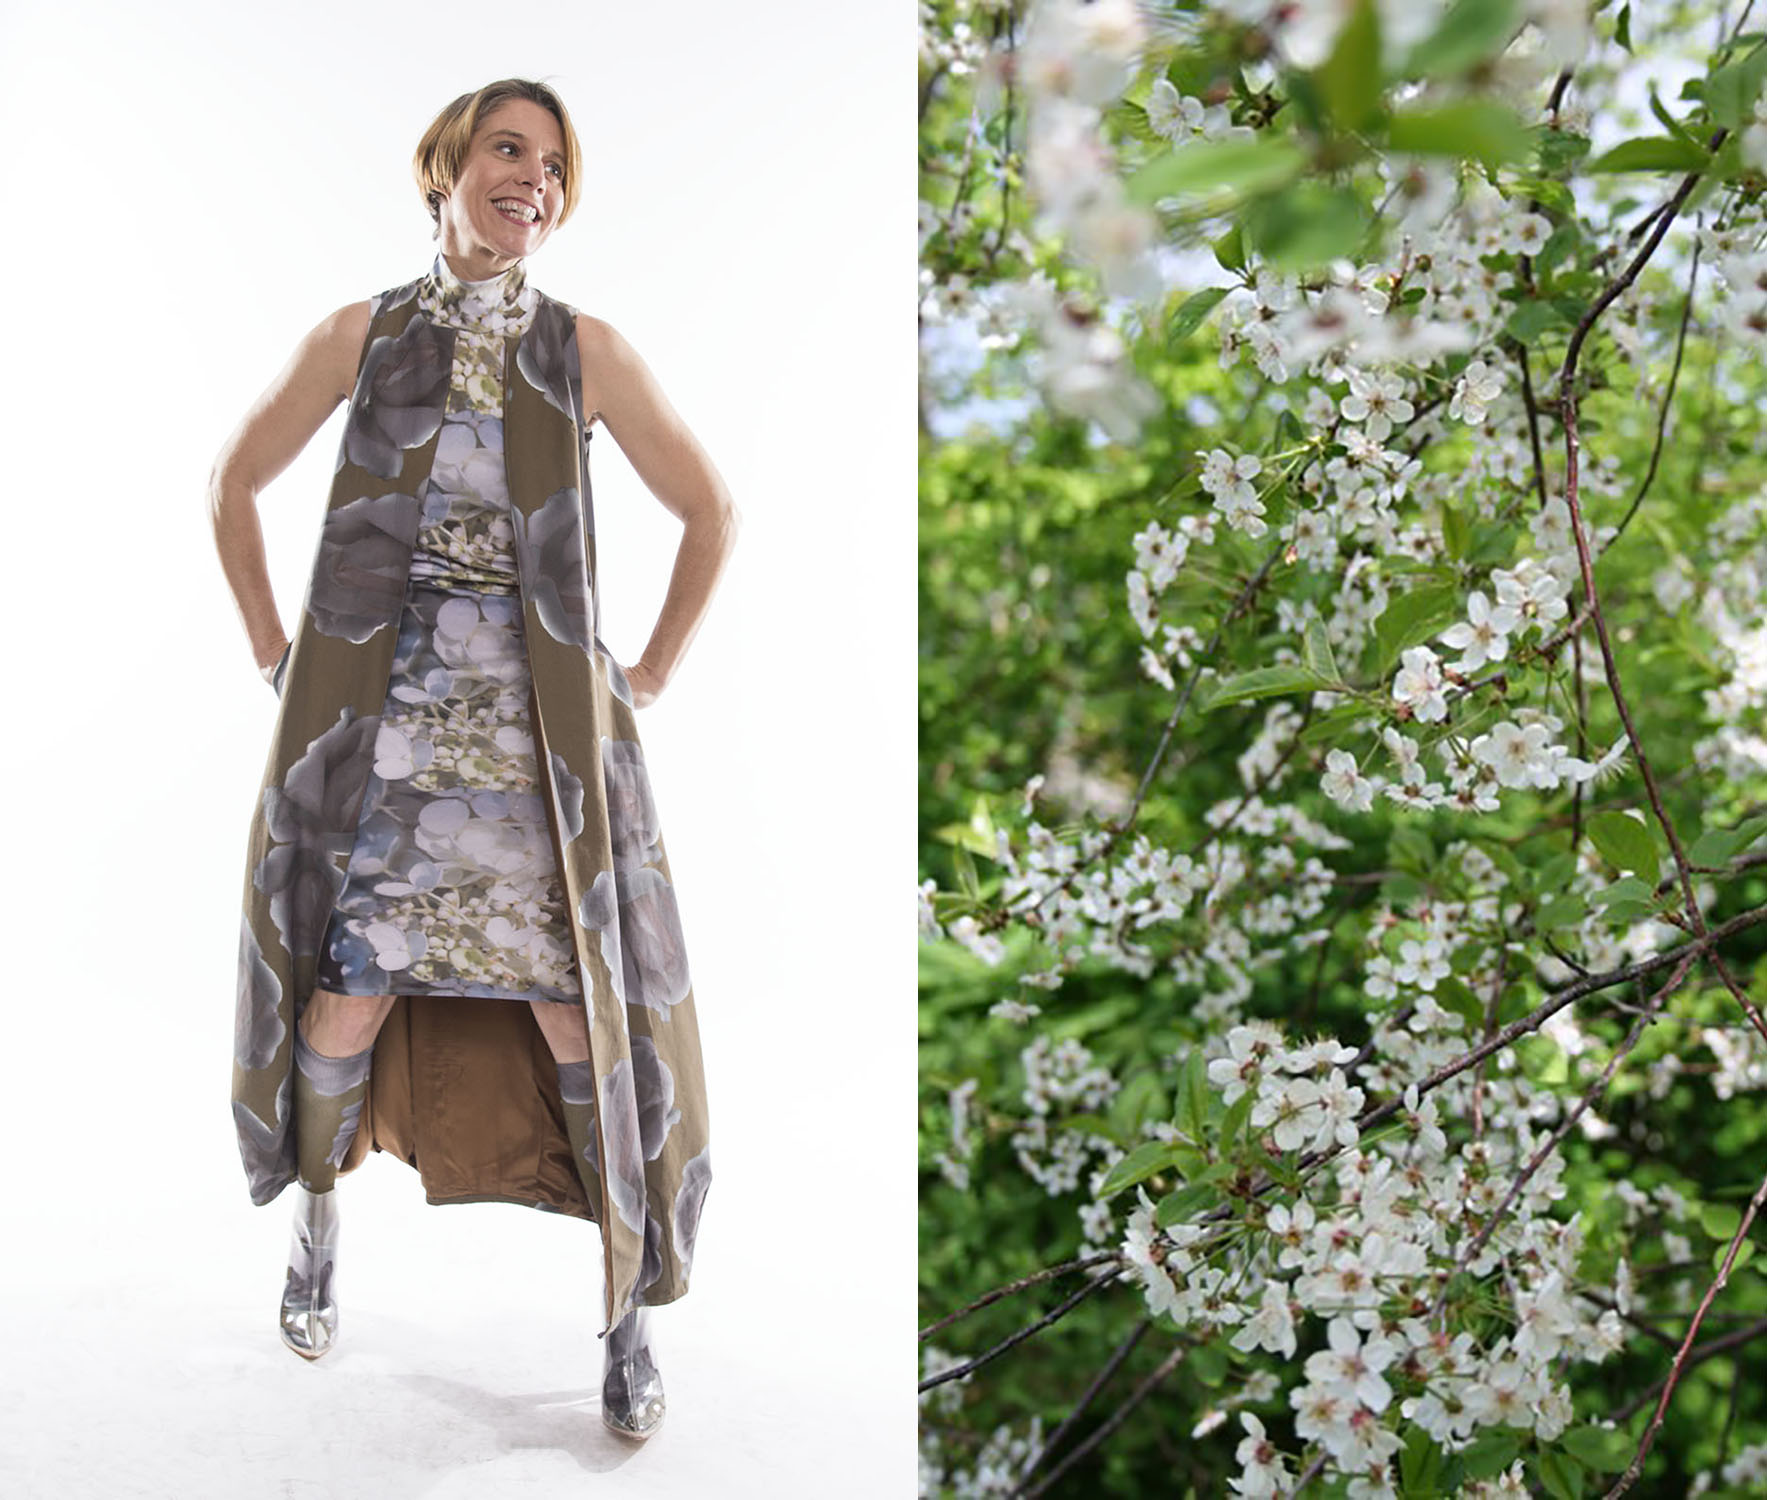 On the left is joyous me, wearing our  Everything's Coming Up Roses vest  and the  Lauryn dress  in rainclusters. On the right is the wild cherry tree in my mother's garden which JUST blossomed today as a remote birthday gift!!